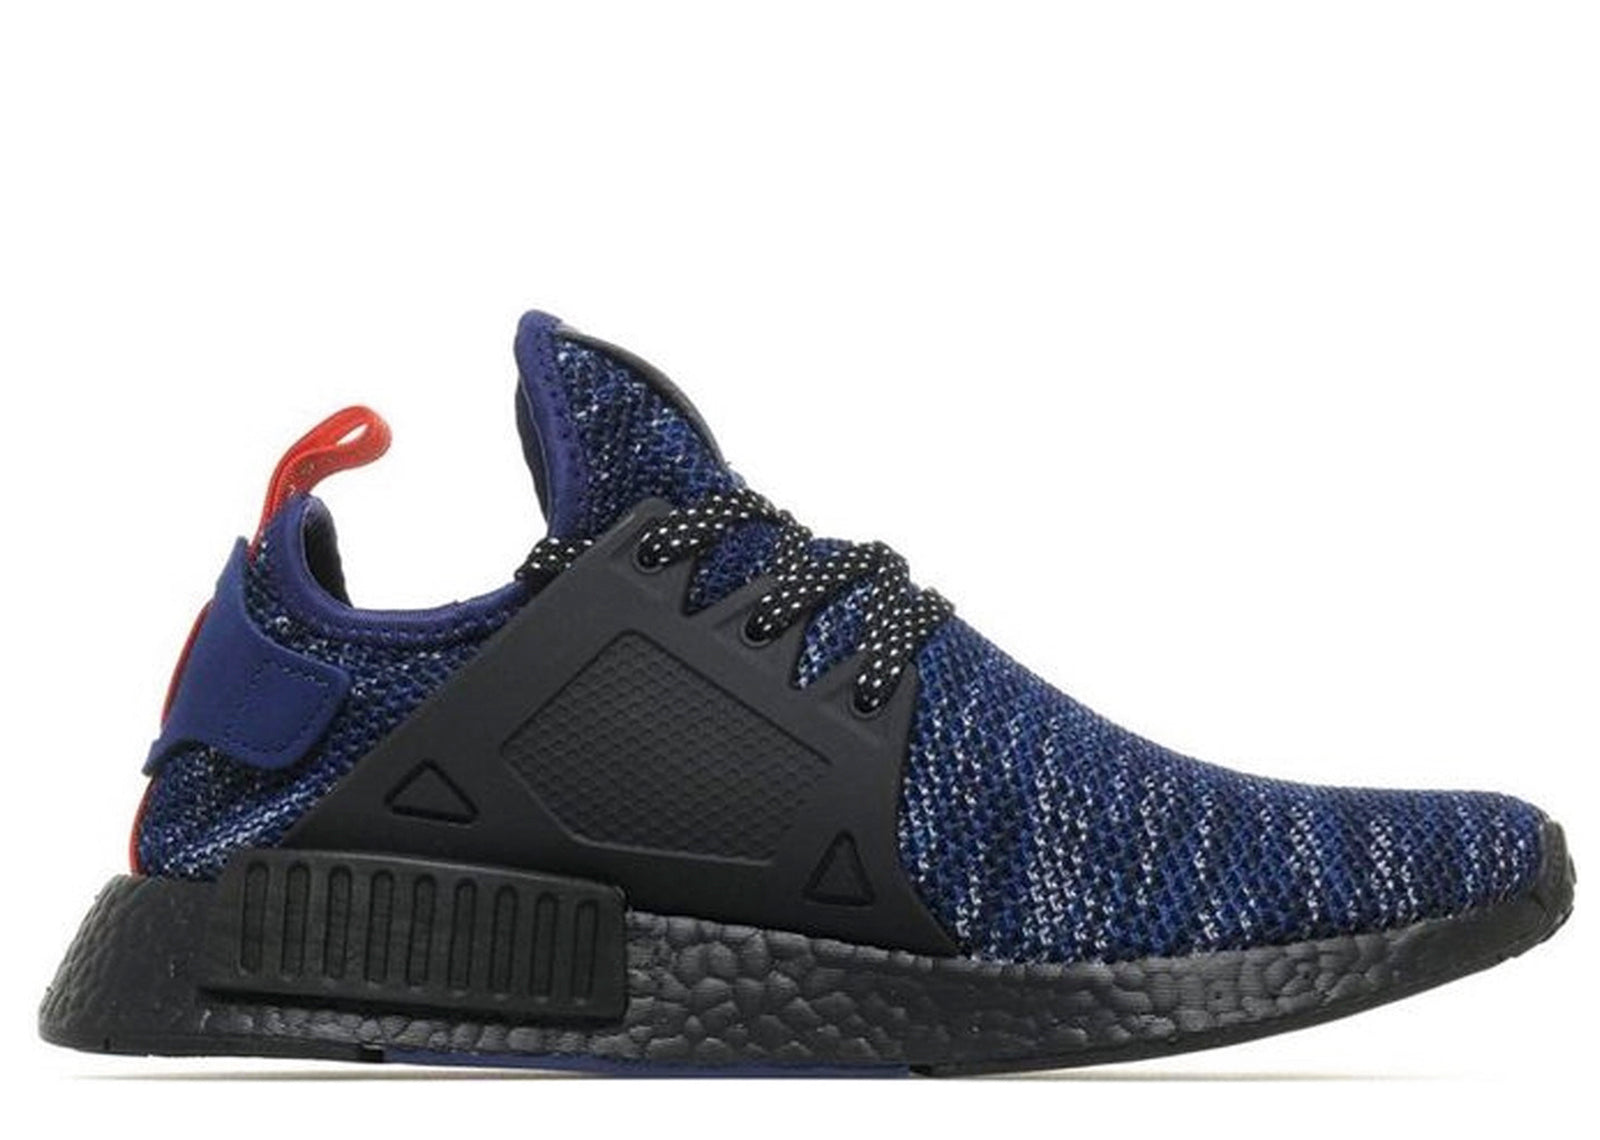 new arrival f6fd3 2b92f ADIDAS NMD XR1 JD SPORTS CORE BLUE BLACK